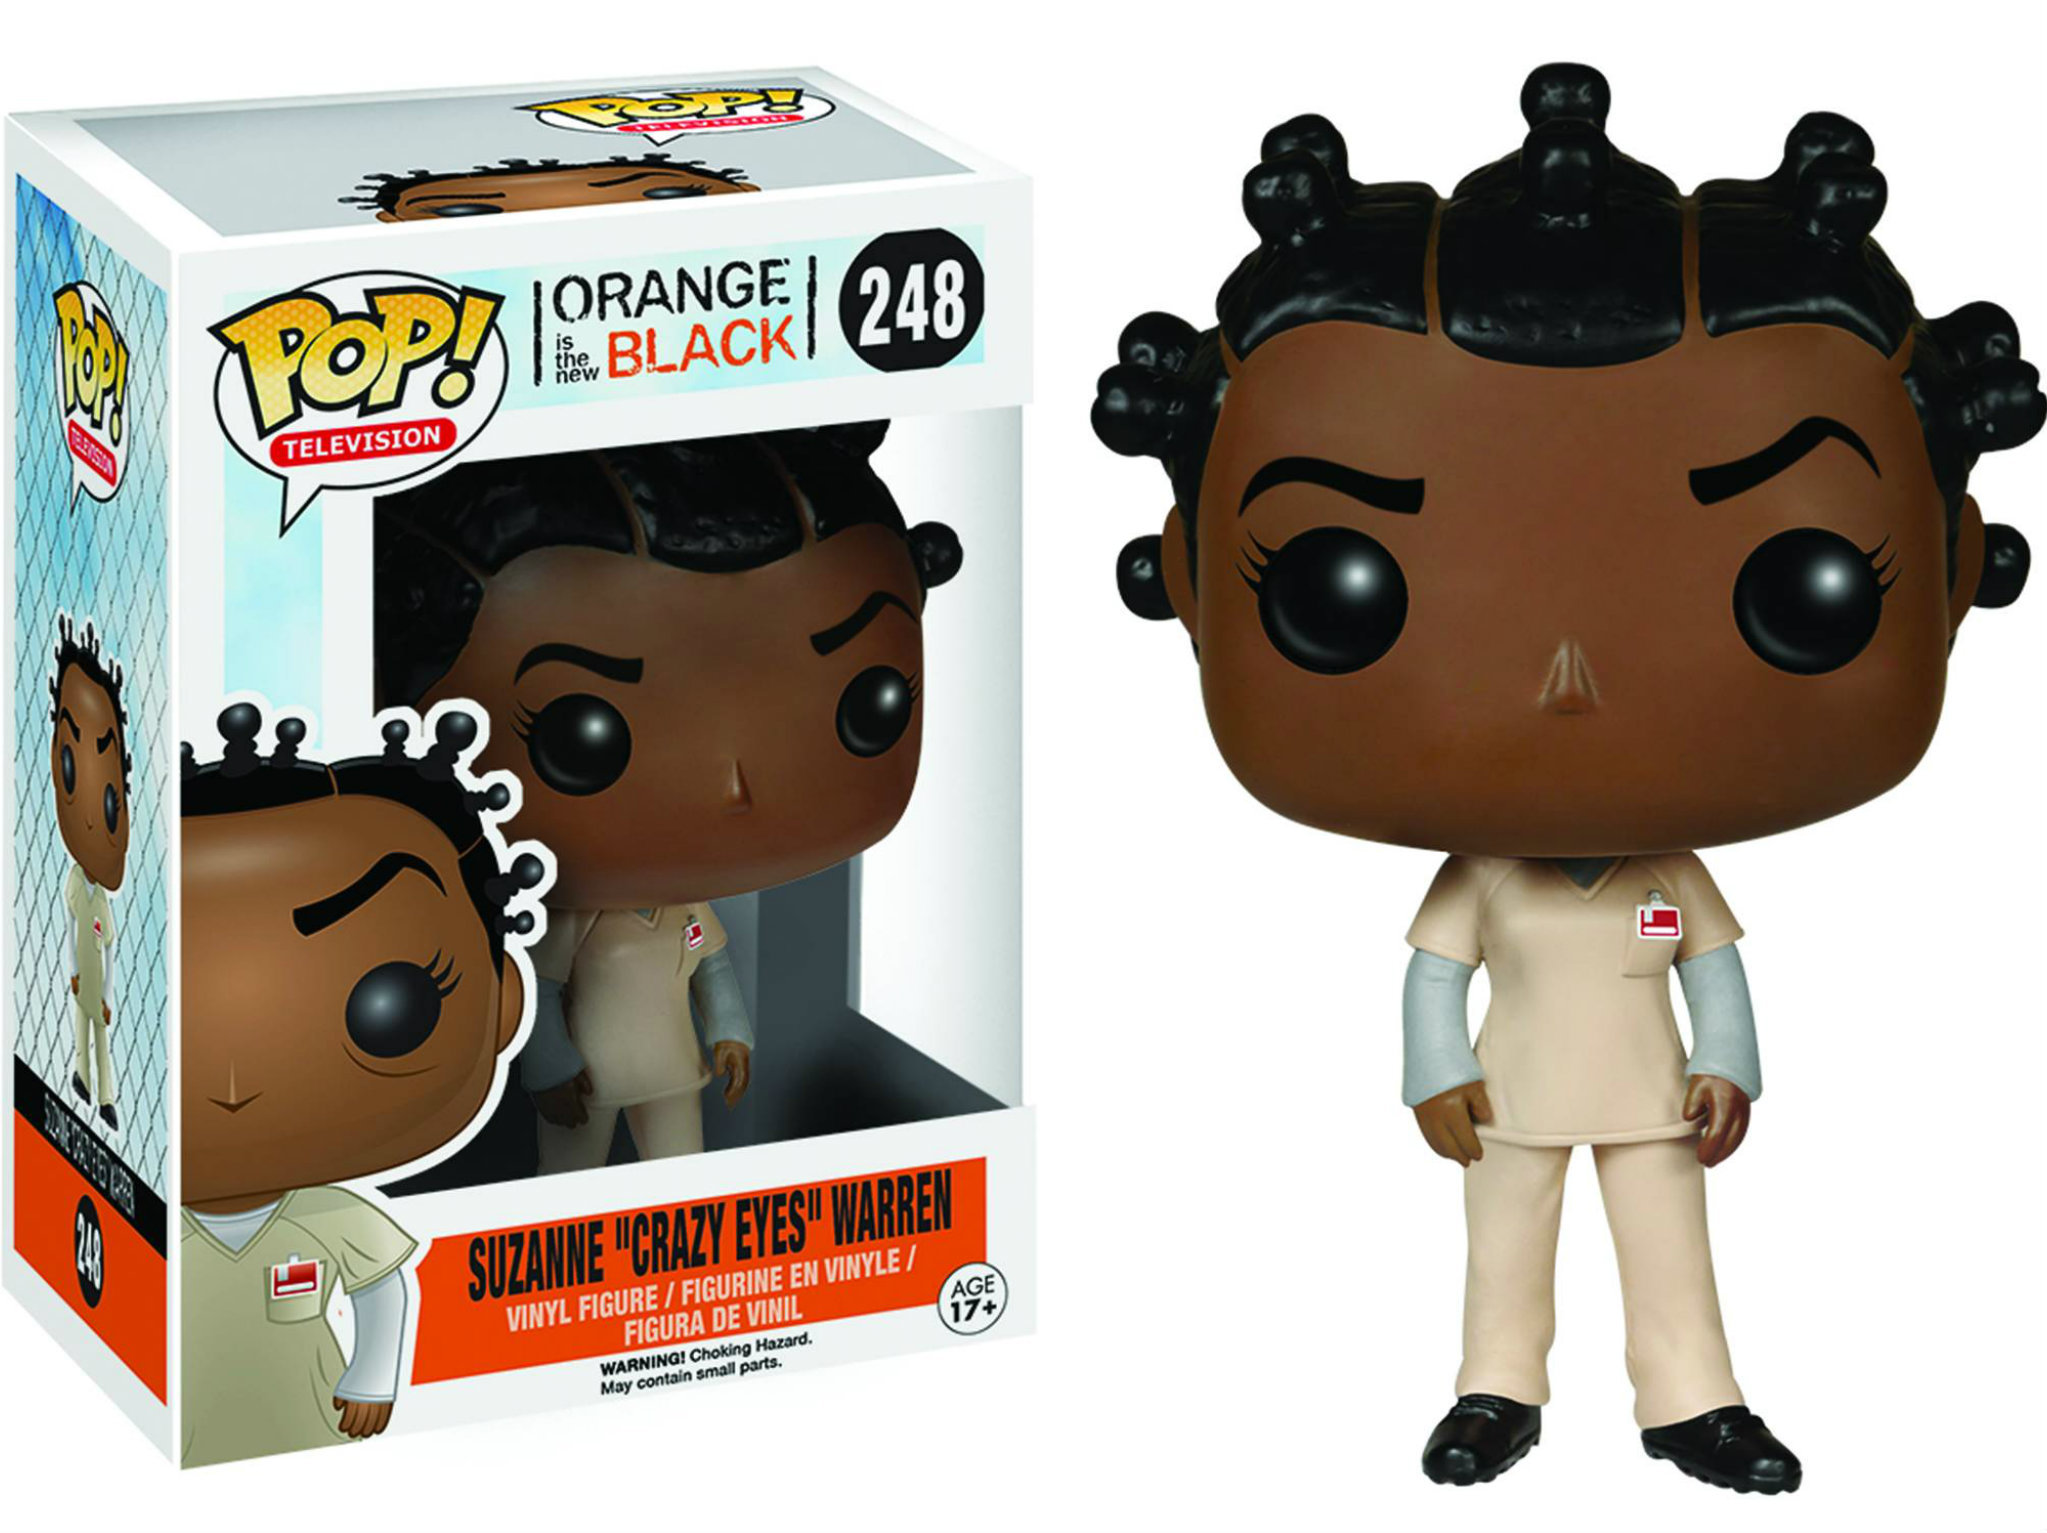 Funko de Crazy Eyes, de Orange is the New Black